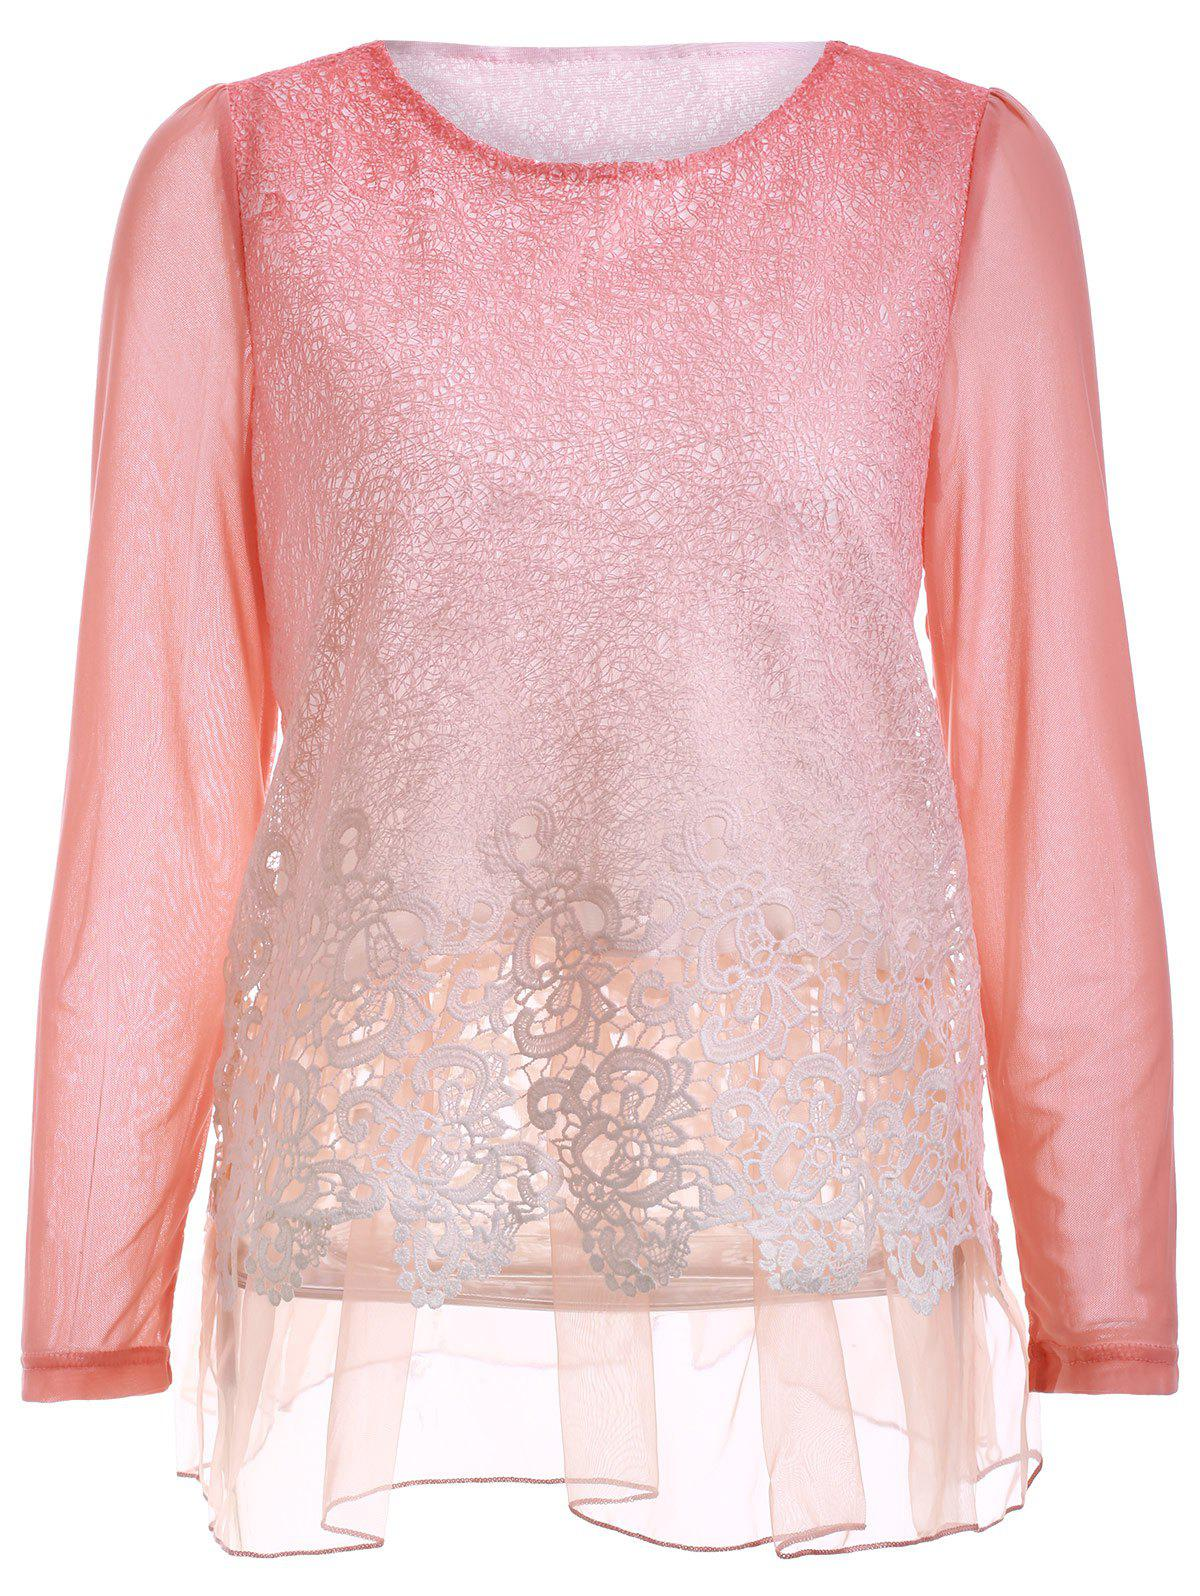 Chic Lace Spliced Hollow Out Loose-Fitting Women's Blouse